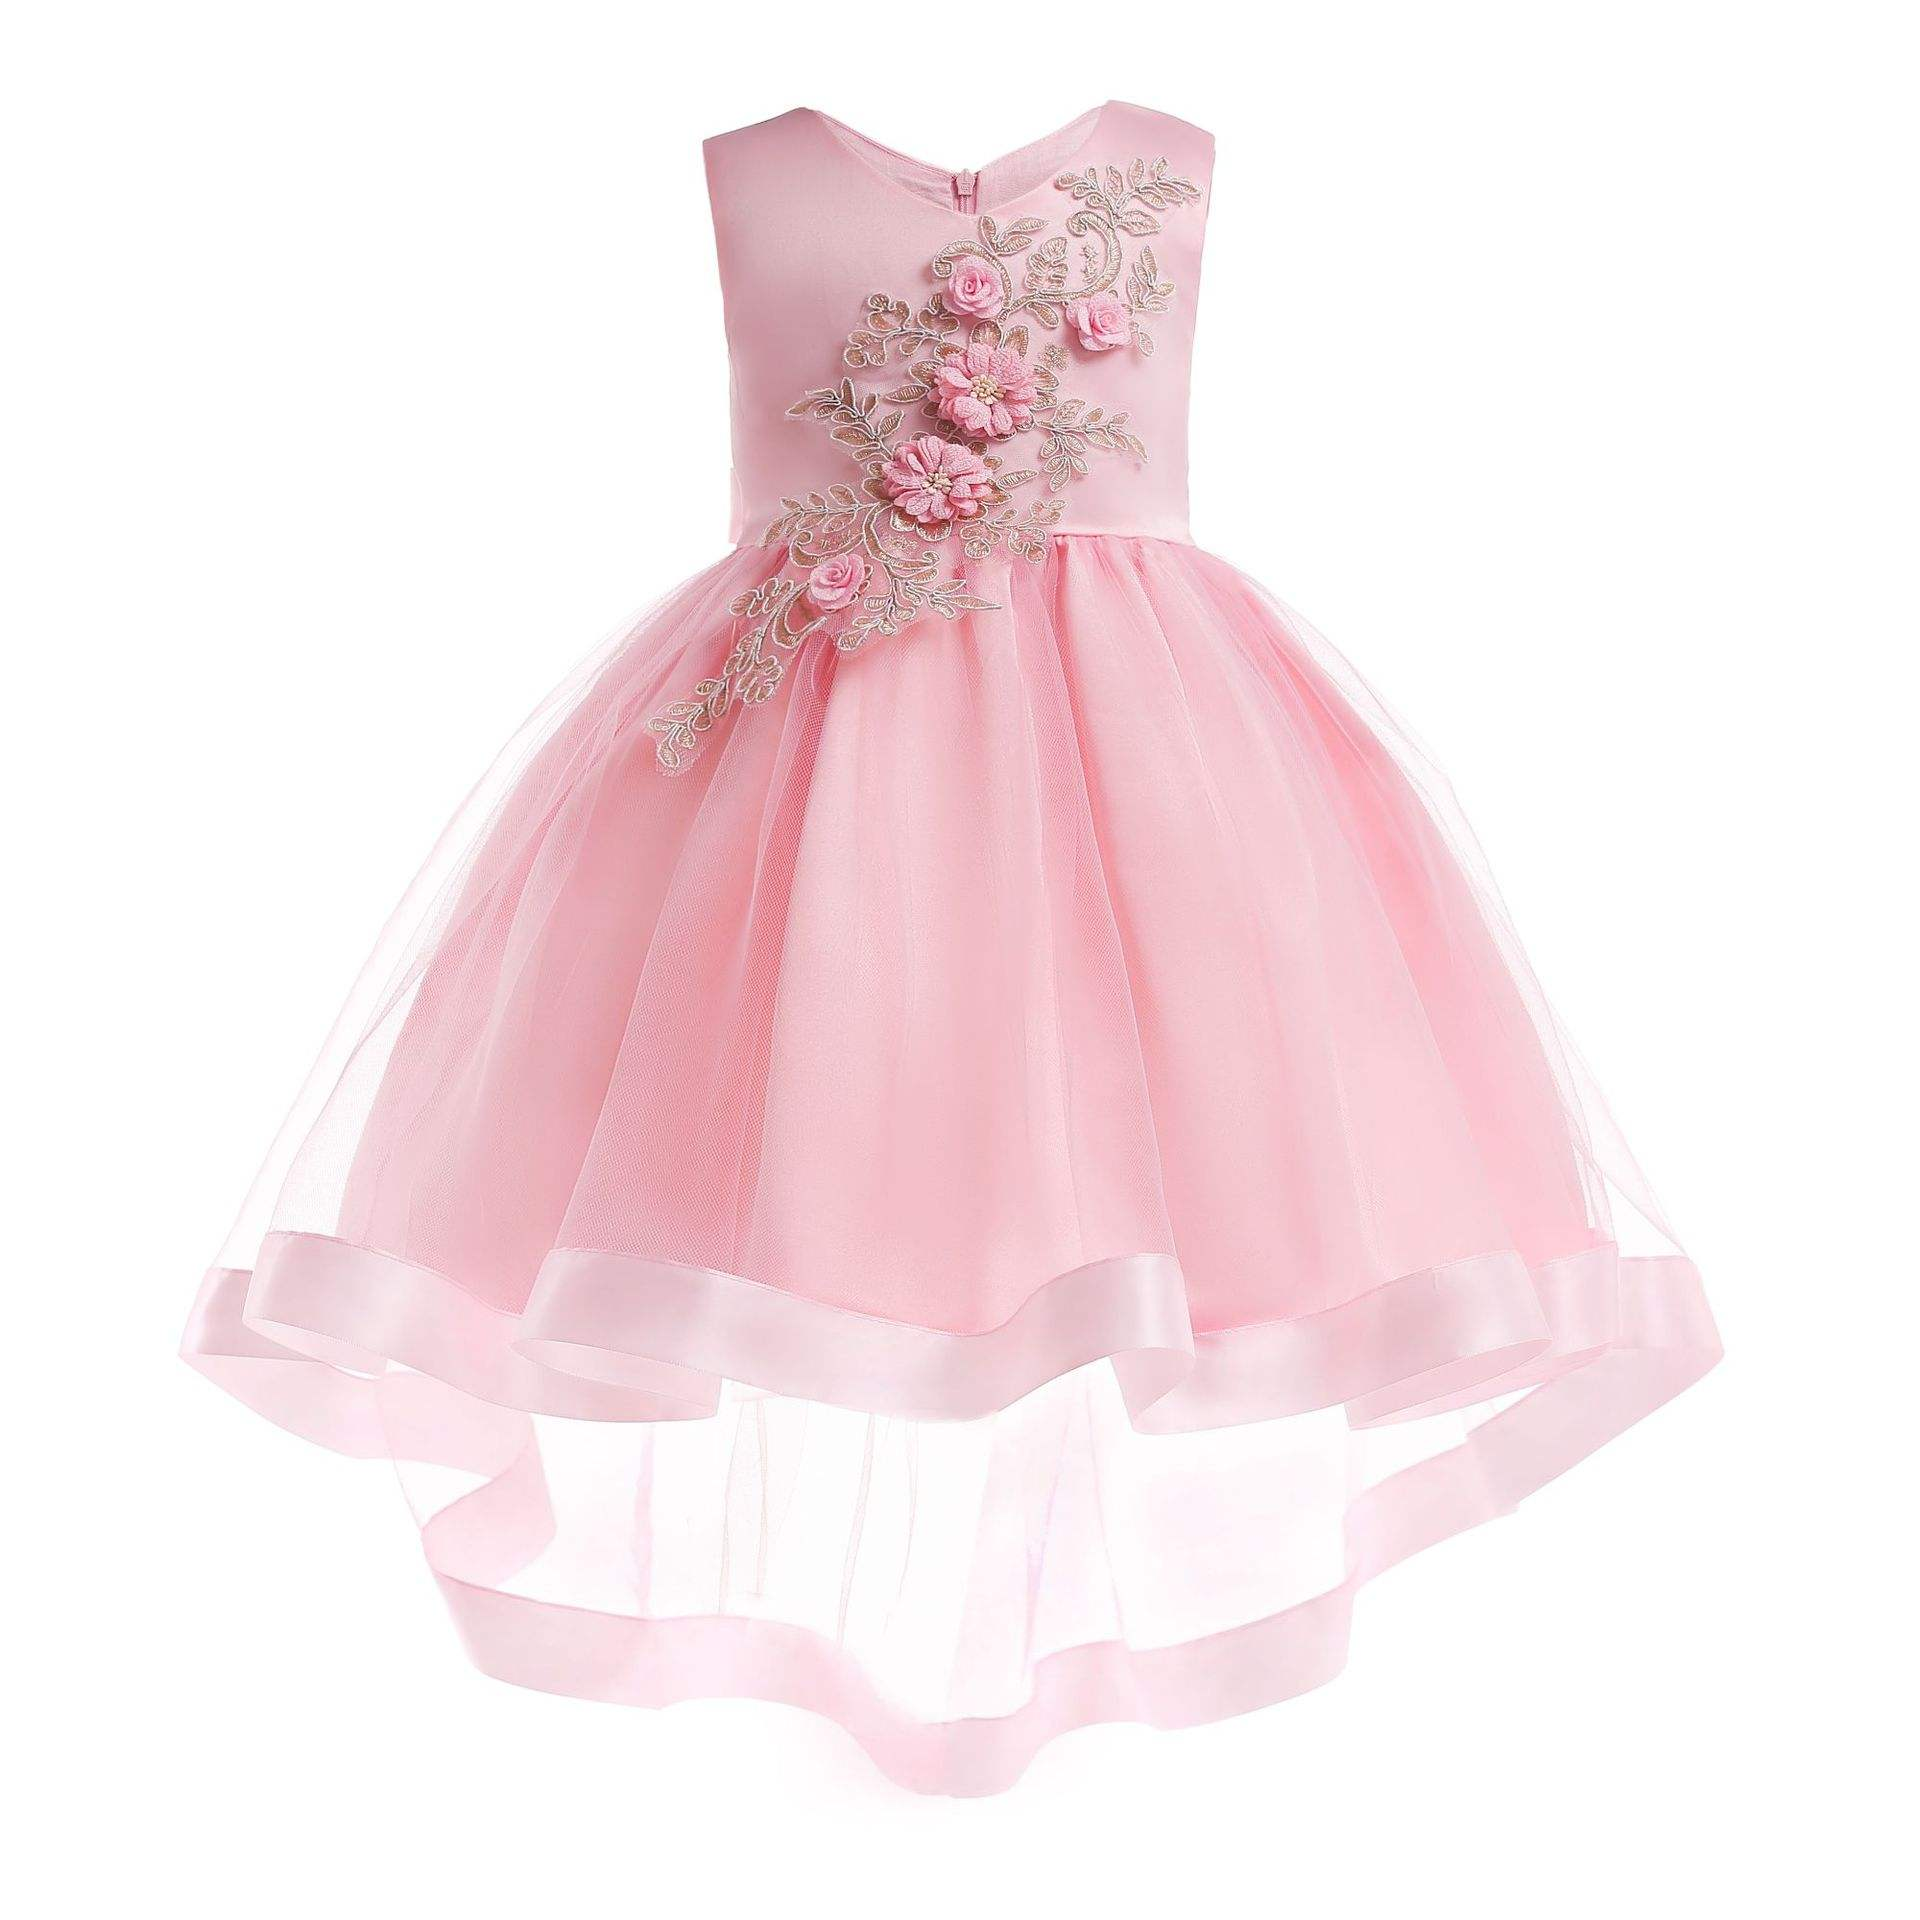 Girls wholesale boutique applique fancy party high-low dress cotton lined pink angel dresses flower girls dress